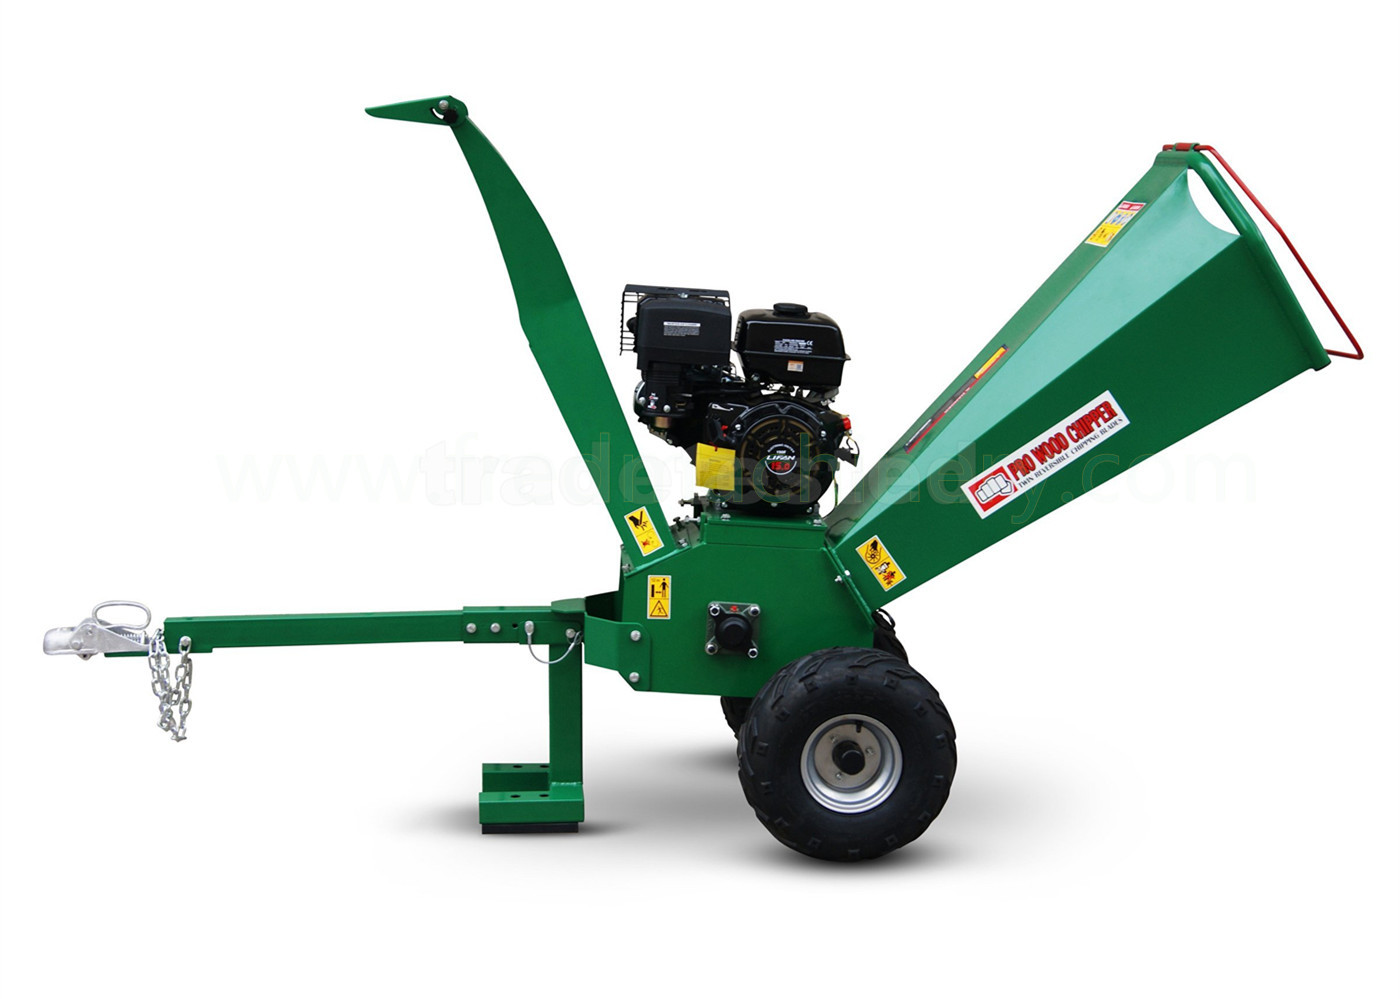 15HP Branch Shredder Chipper 5 Inch Chipping Capacity With Pull Start System